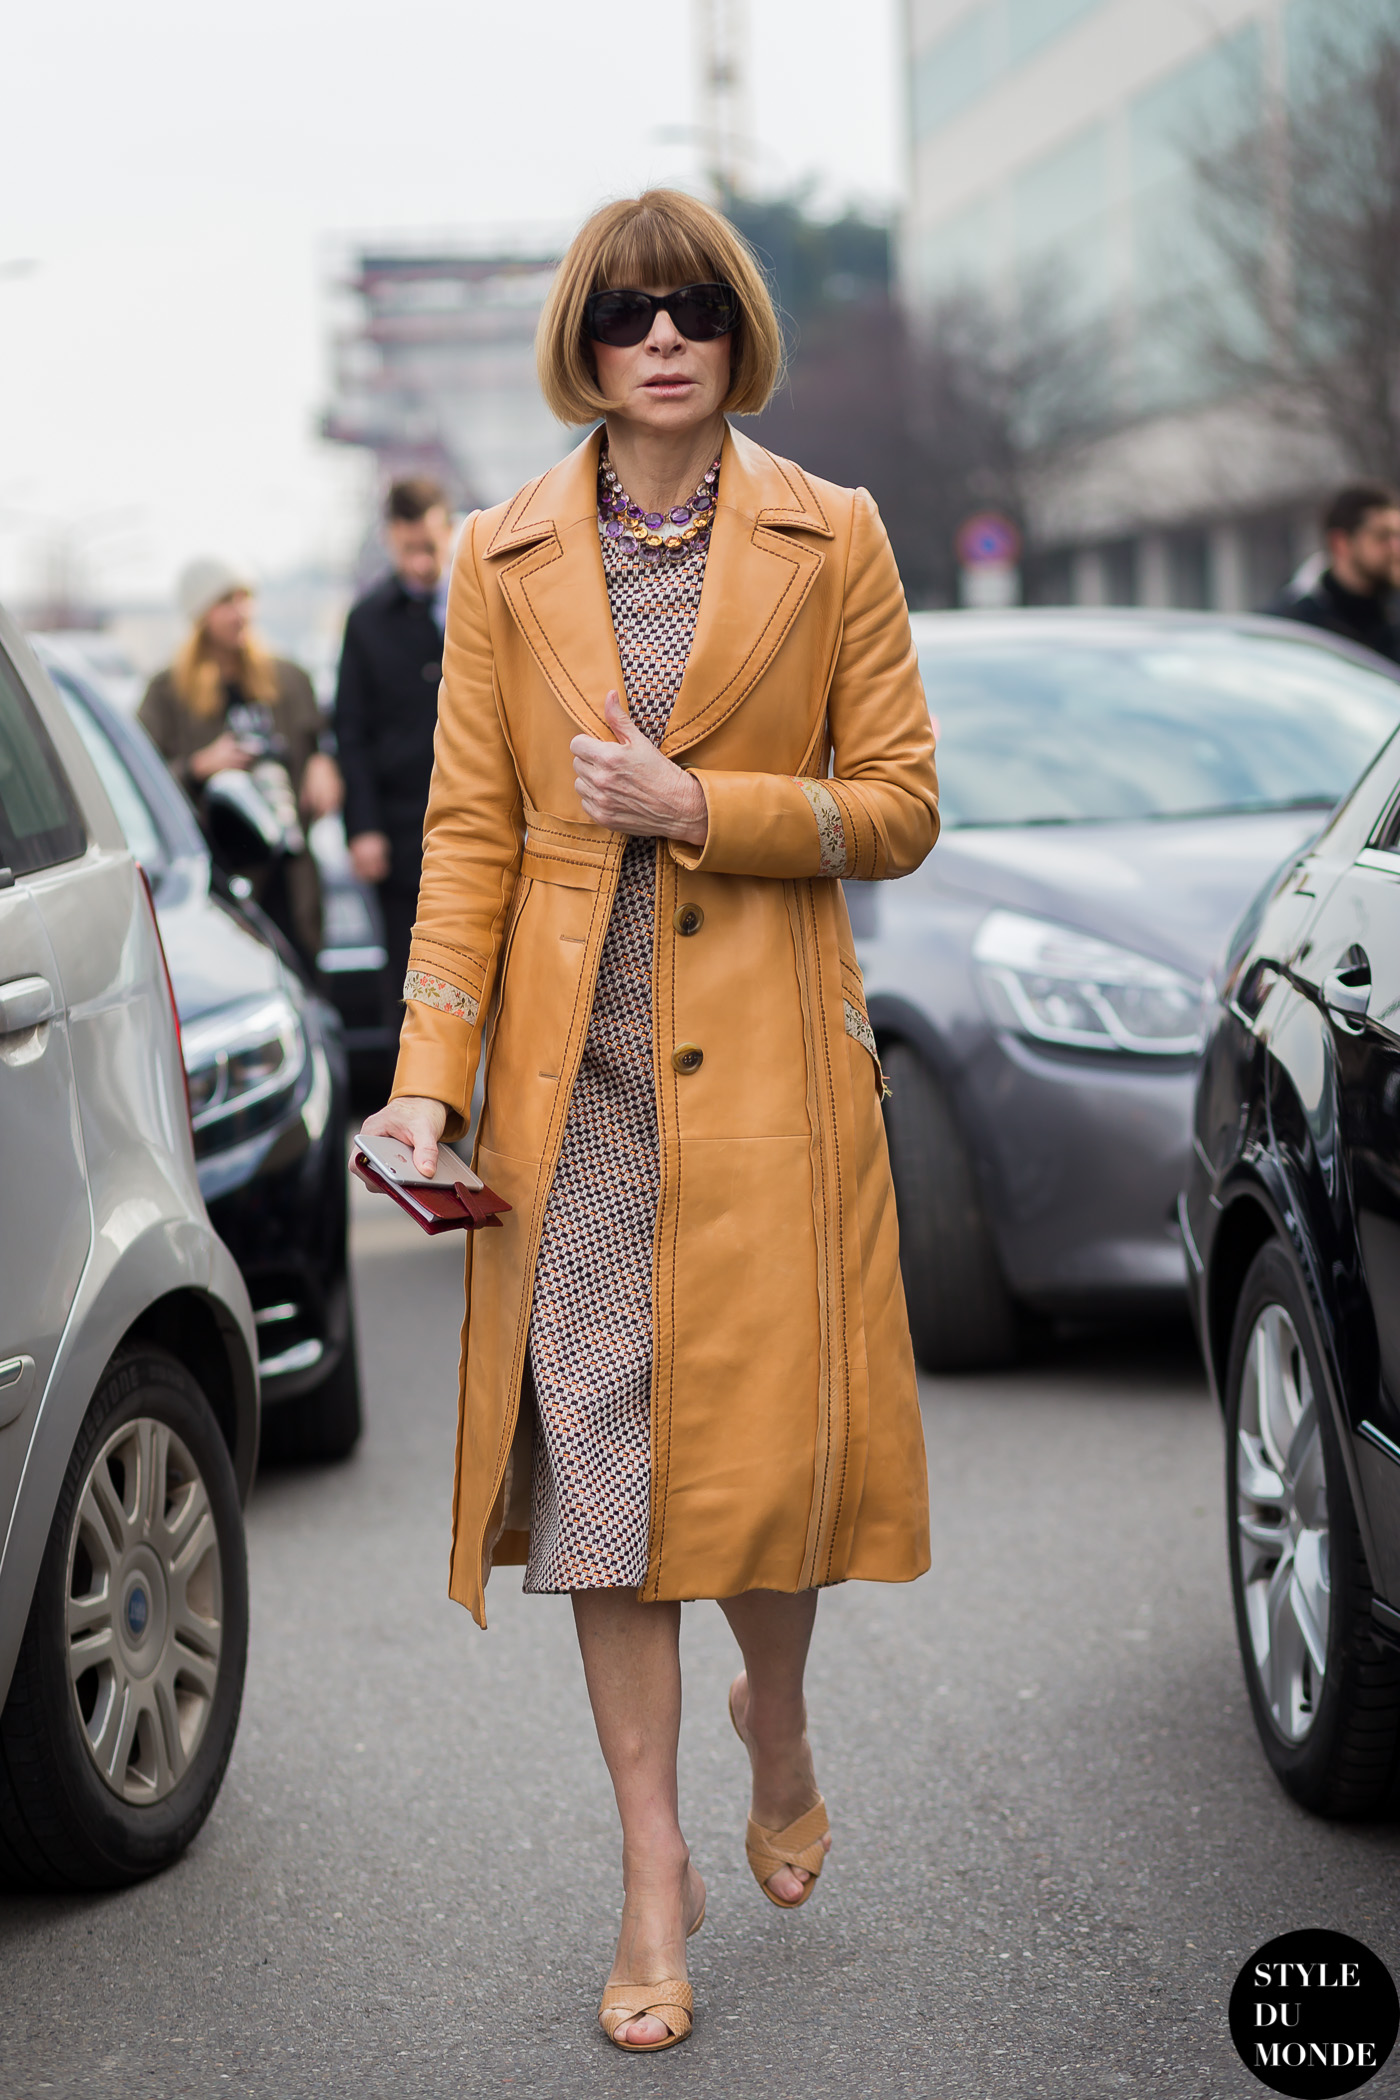 Milan fashion week fw 2015 street style anna wintour style du monde street style street Fashion style october 2015